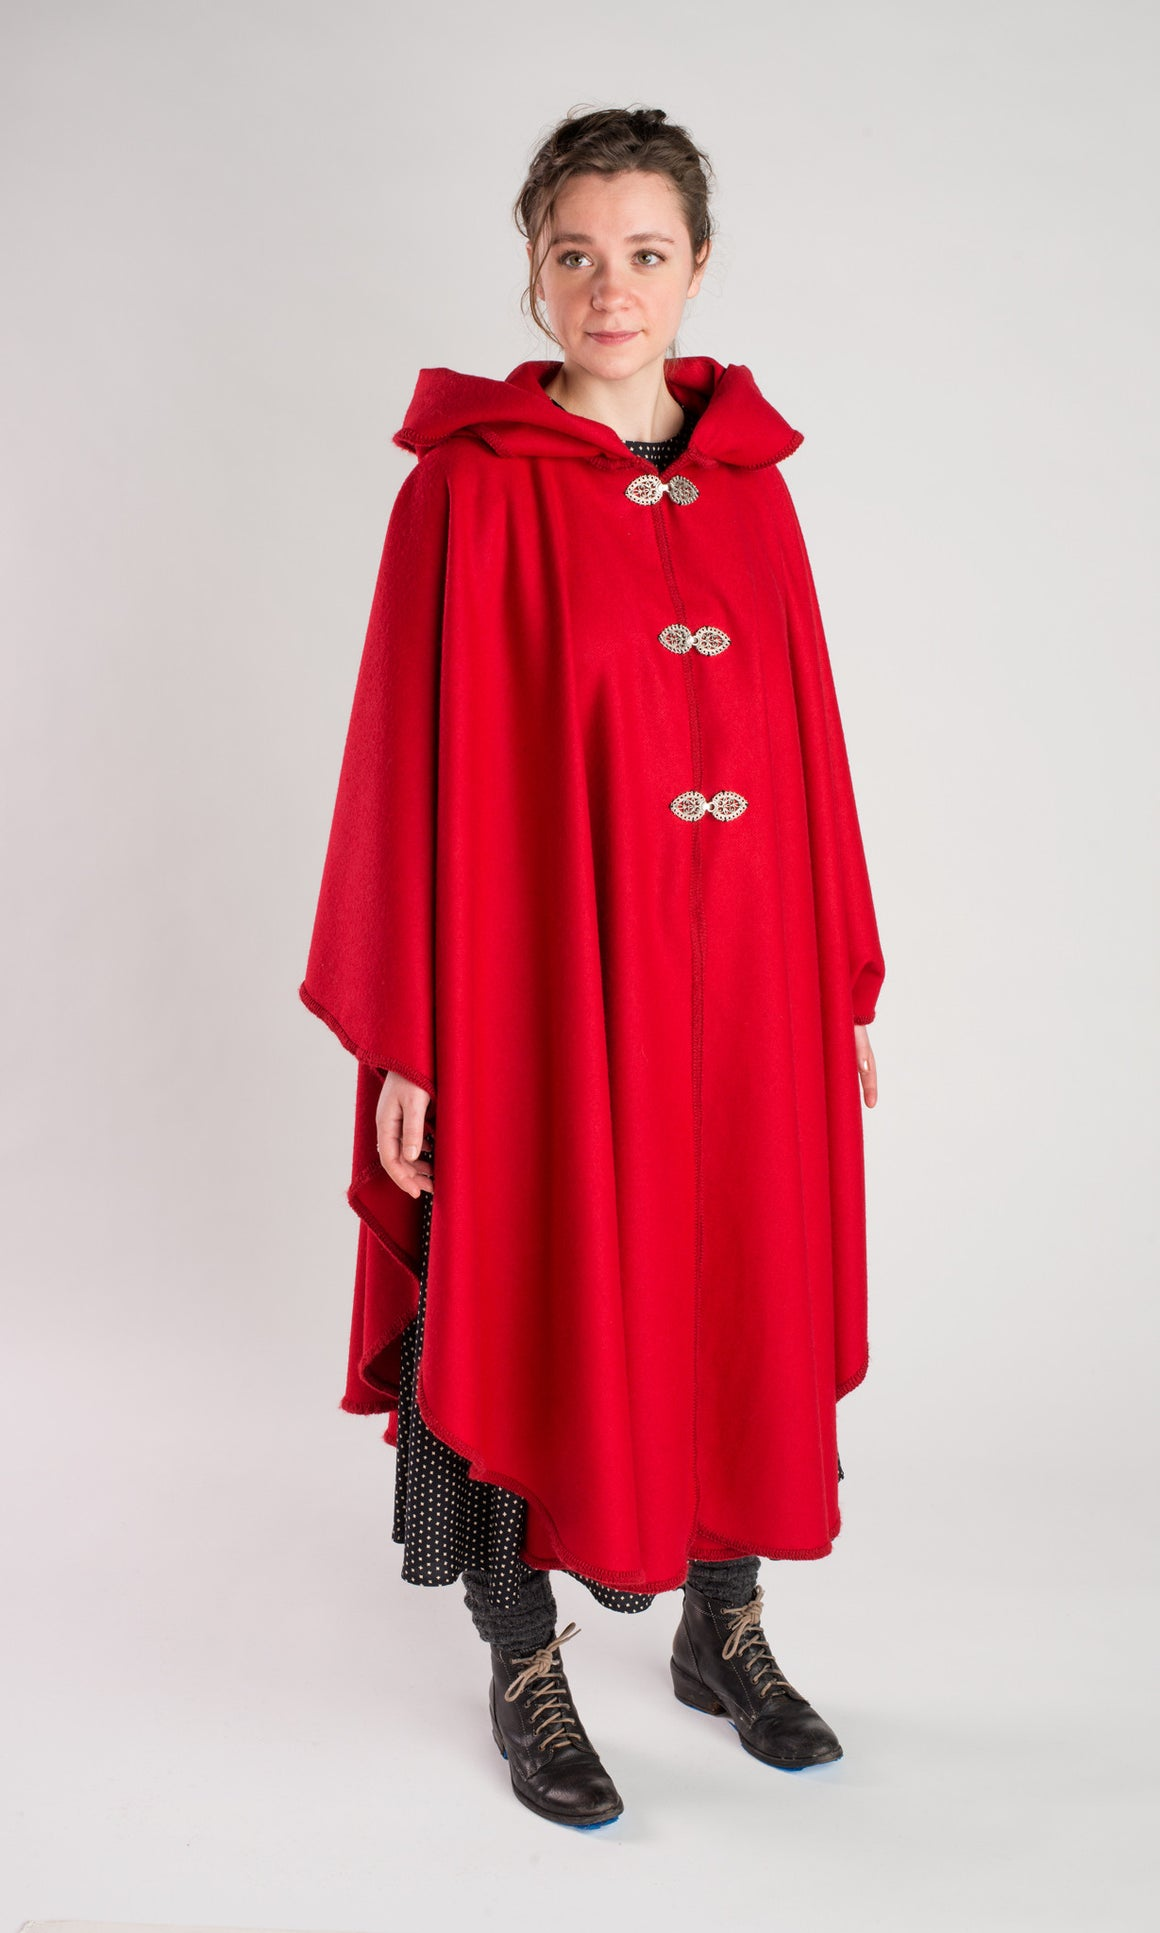 Casco Bay Merino Wool Cape - Cardinal